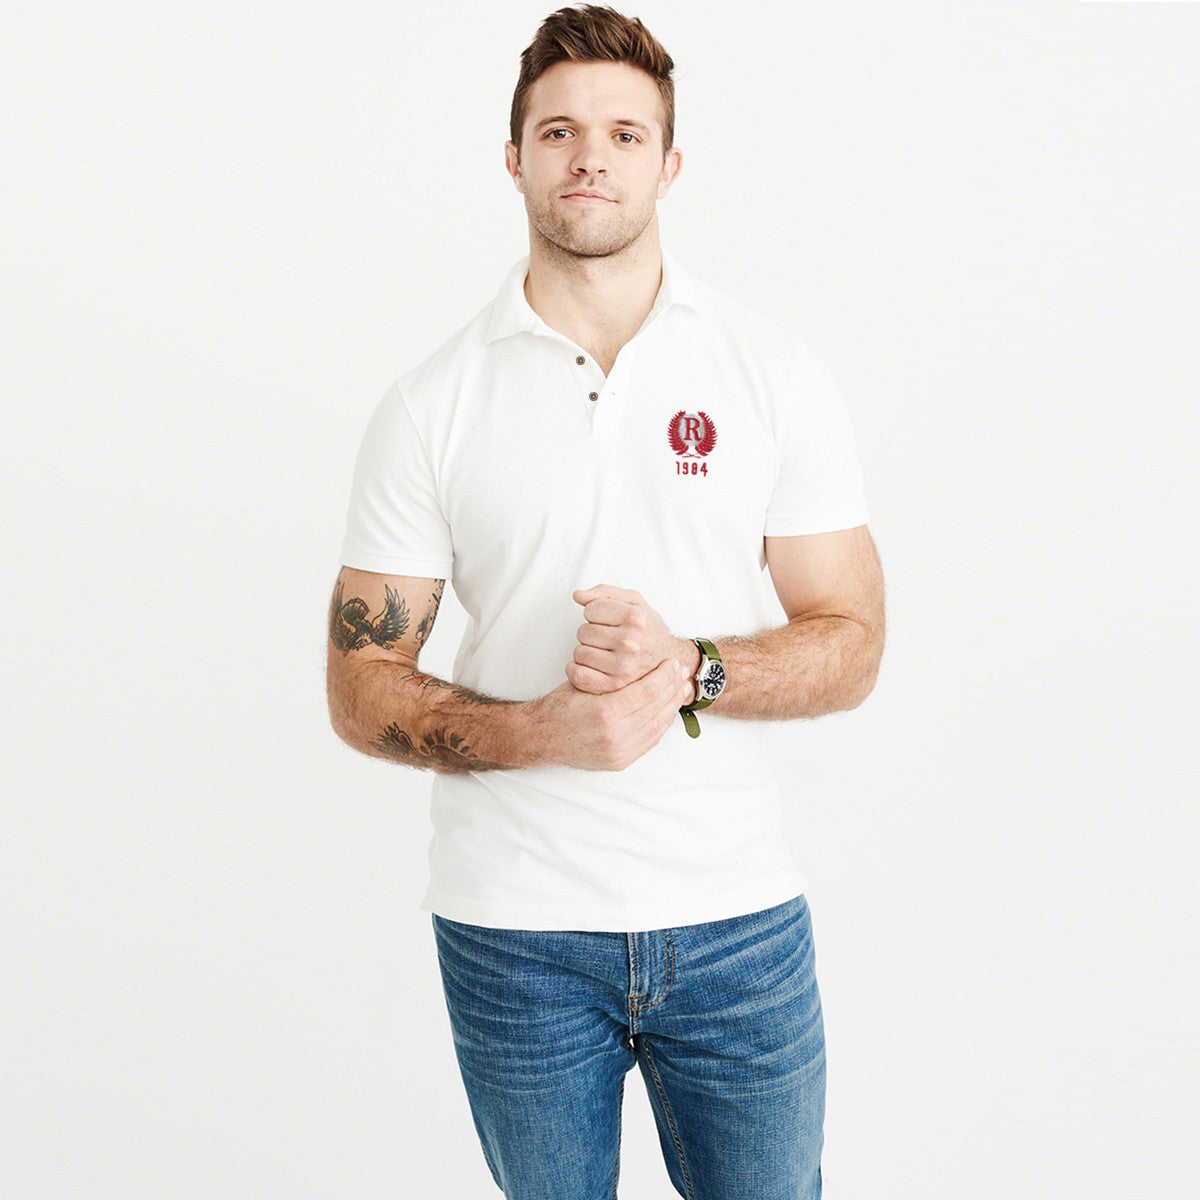 Fat Face Polo Shirt For Men-Off White & Red Embroidery -BE2001